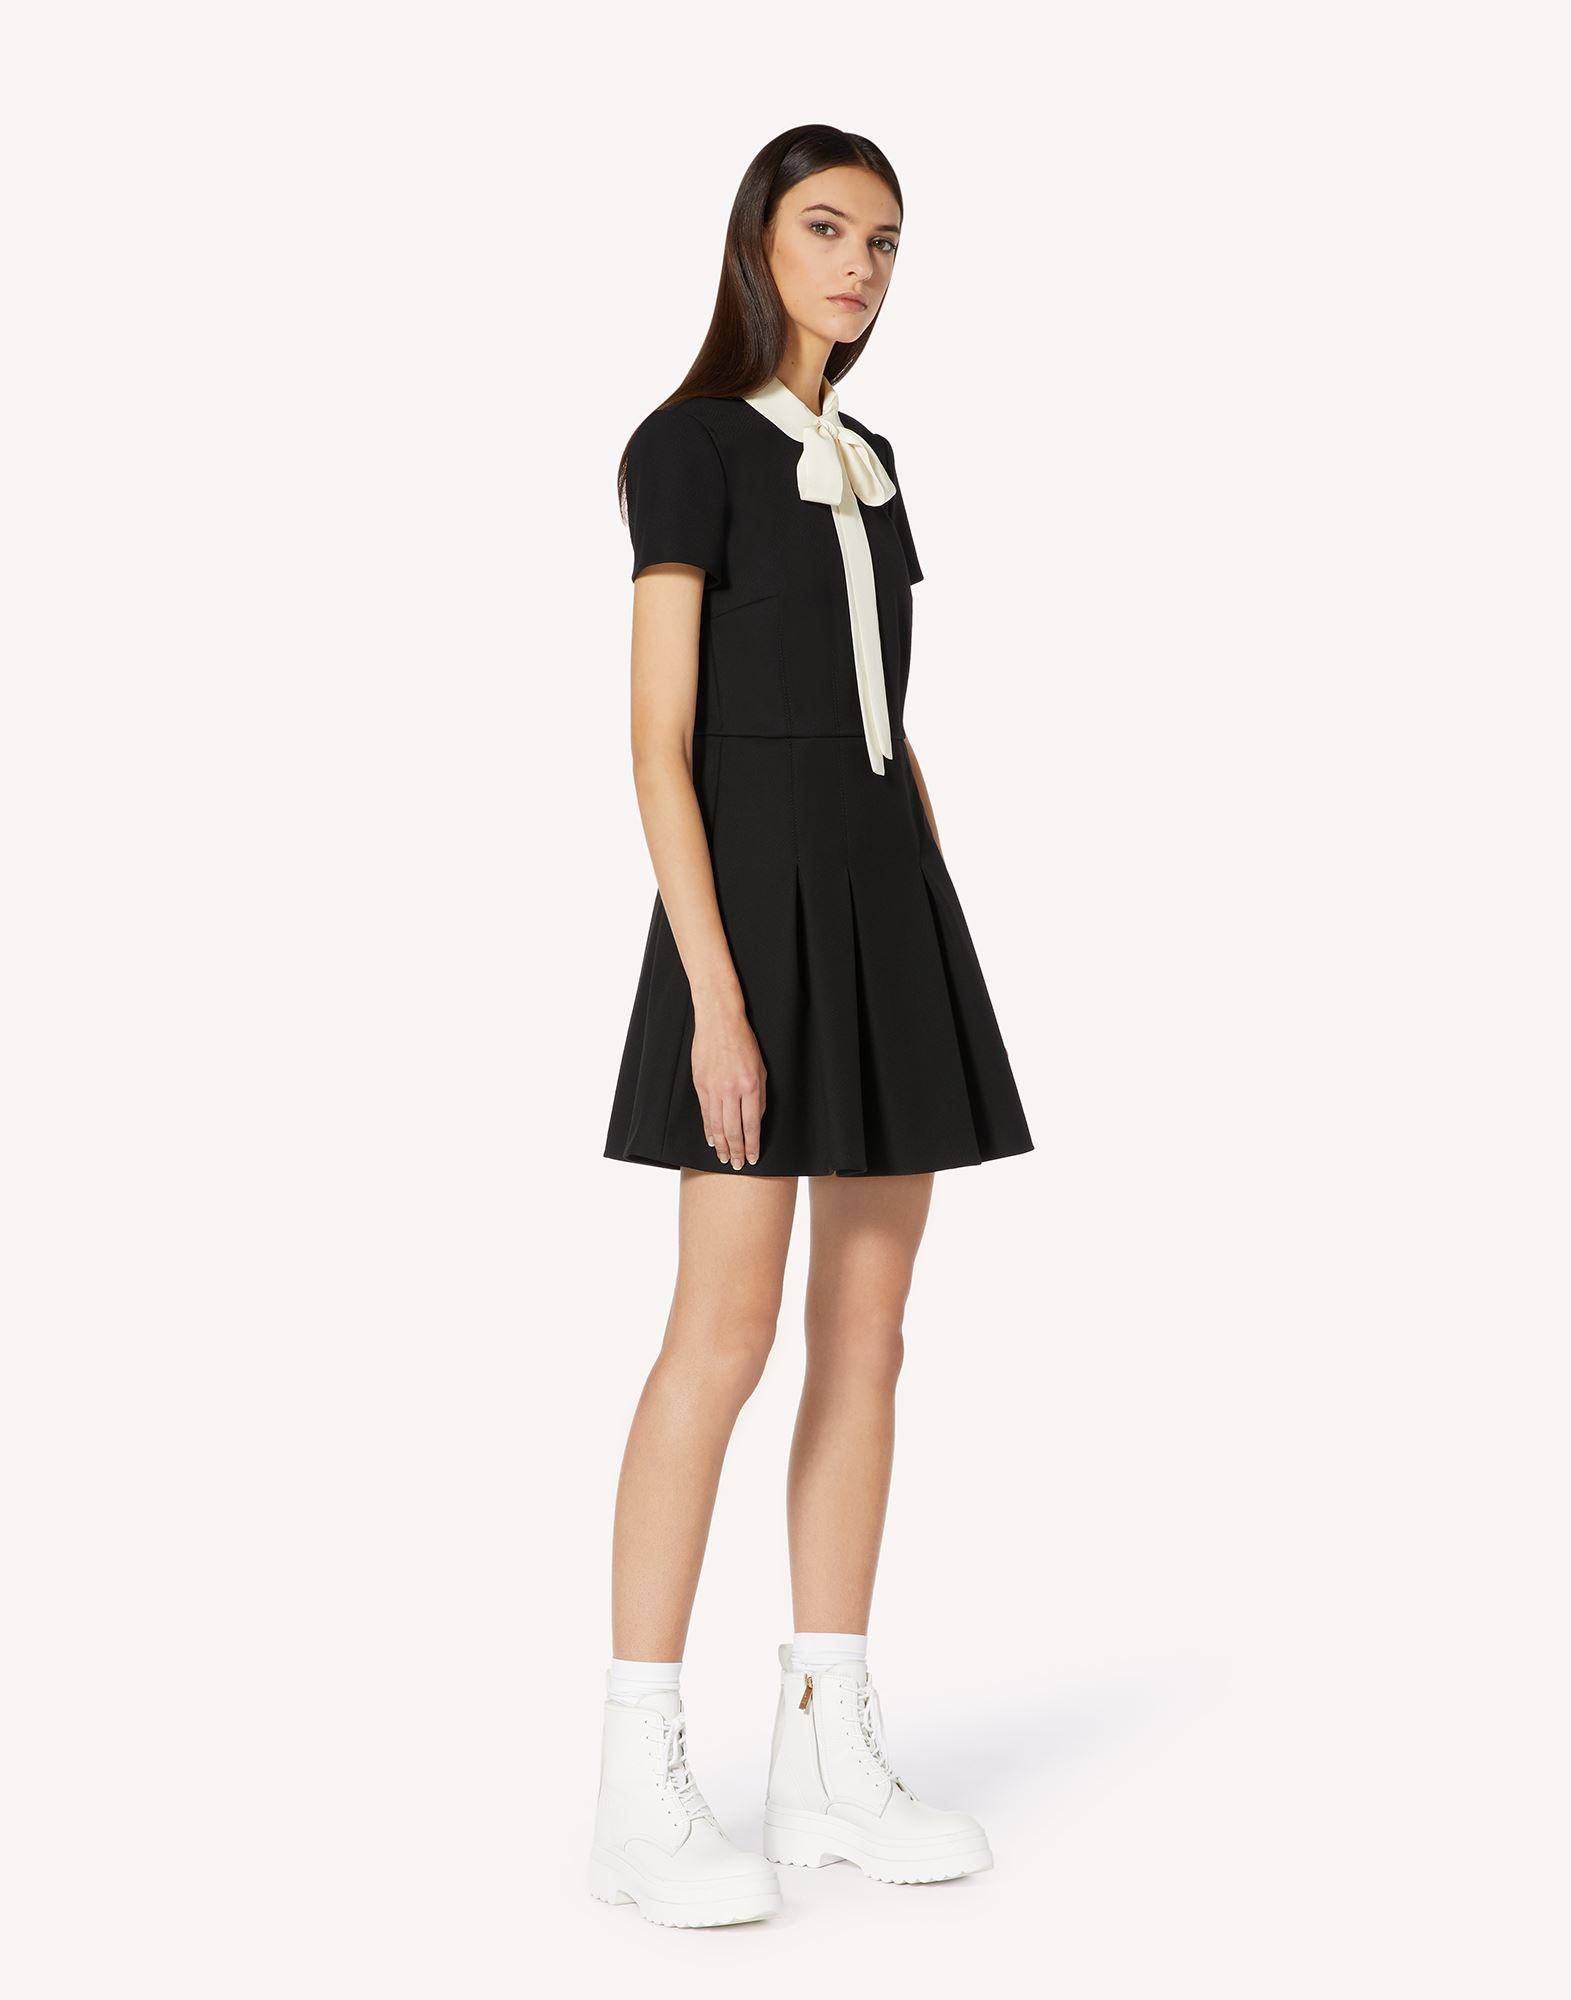 TRICOTINE DRESS WITH COLLAR DETAIL 2